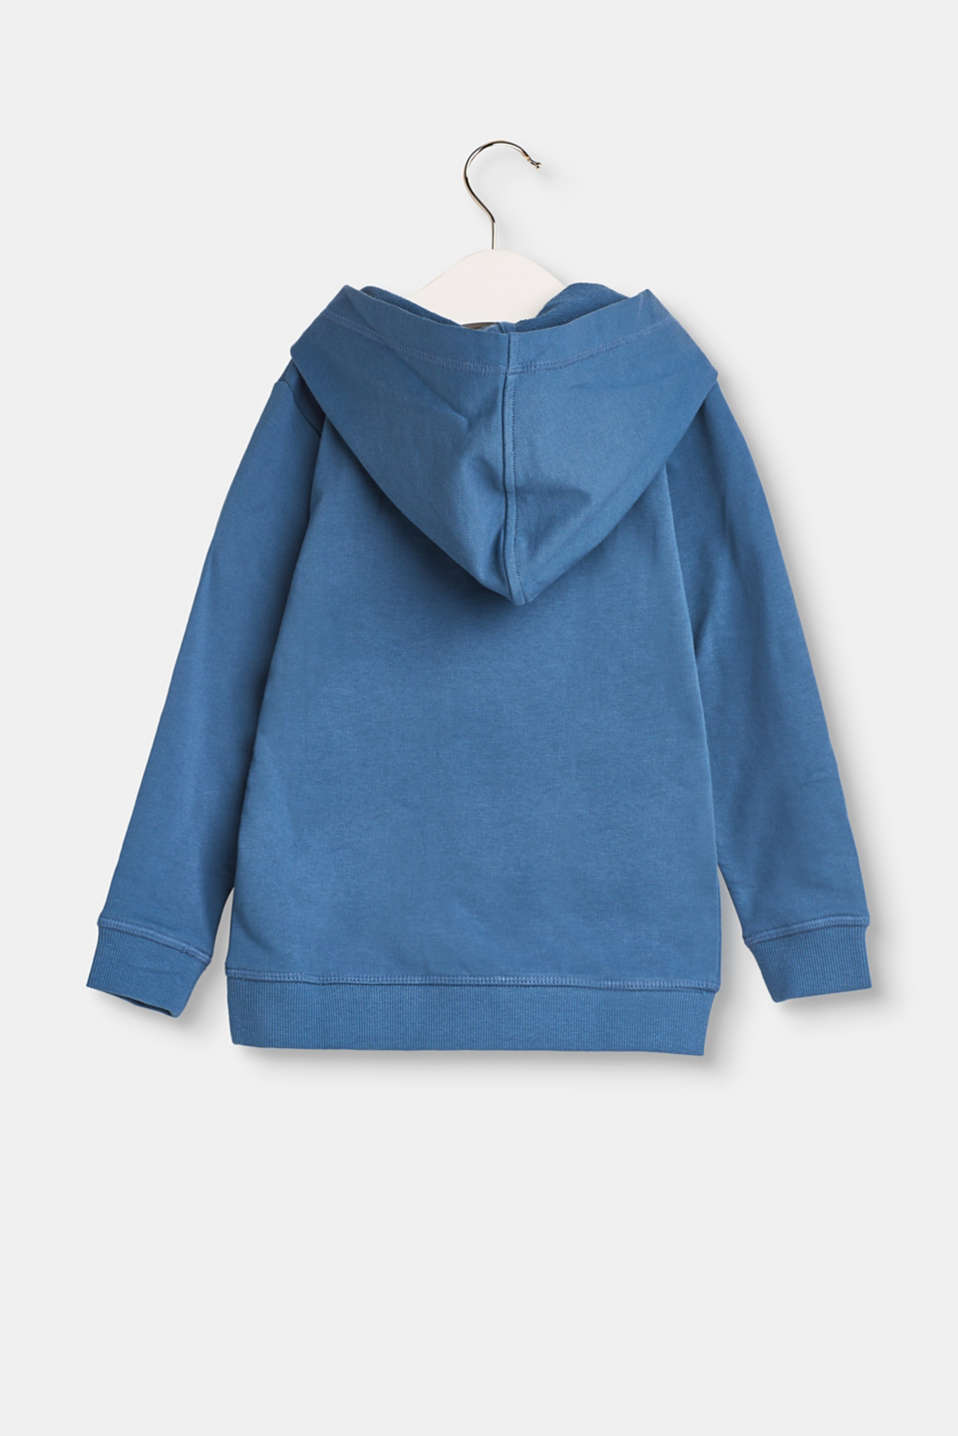 Cotton sweatshirt with a hood